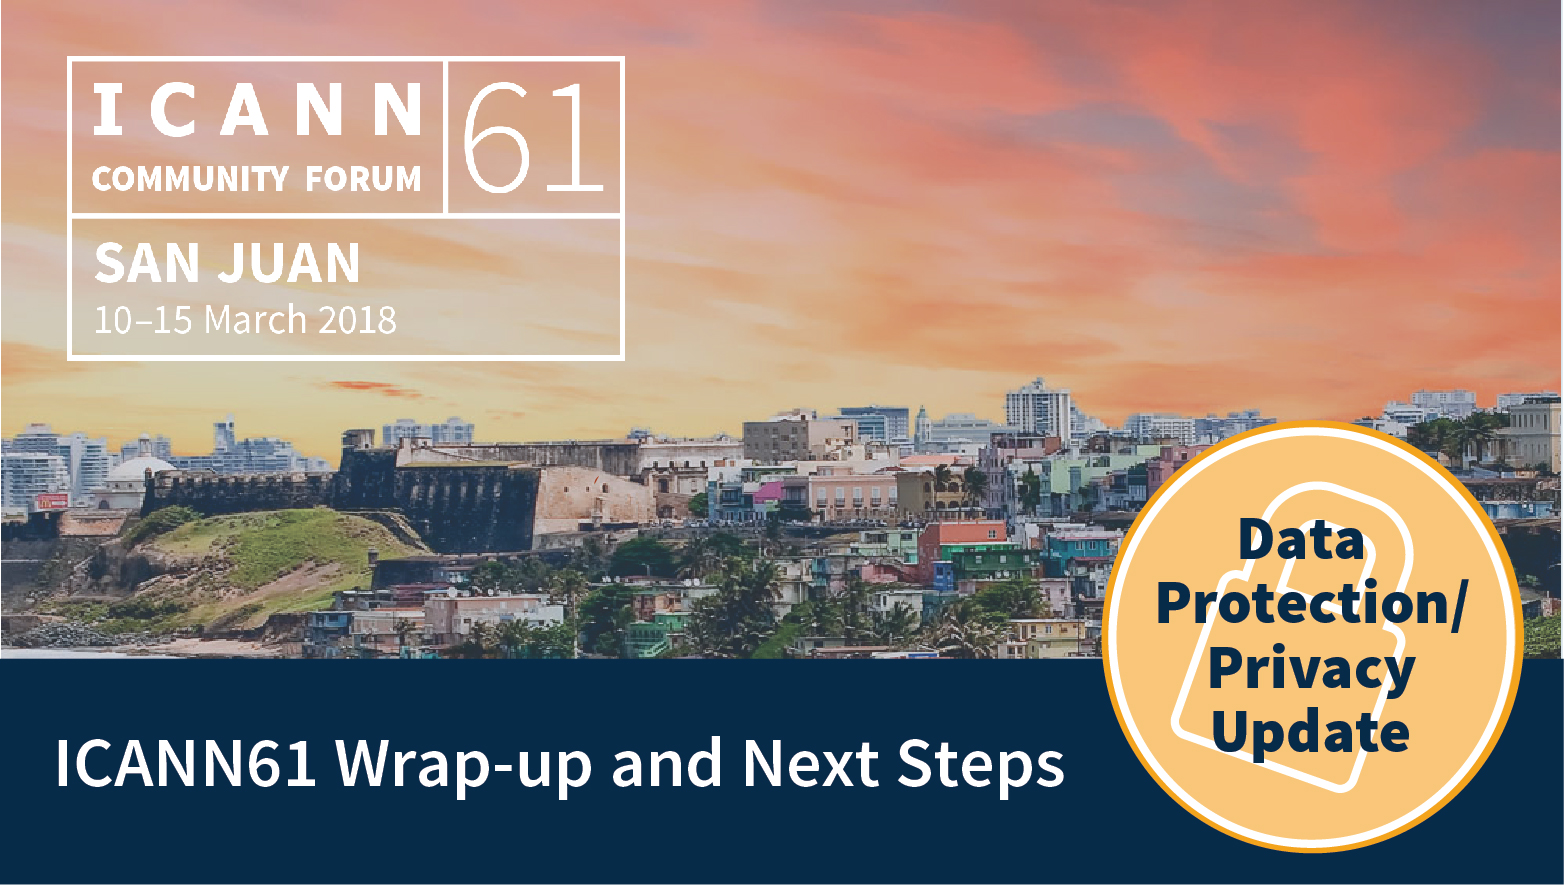 Icann61 wrap up next steps gdpr 1568x890 21mar18 en